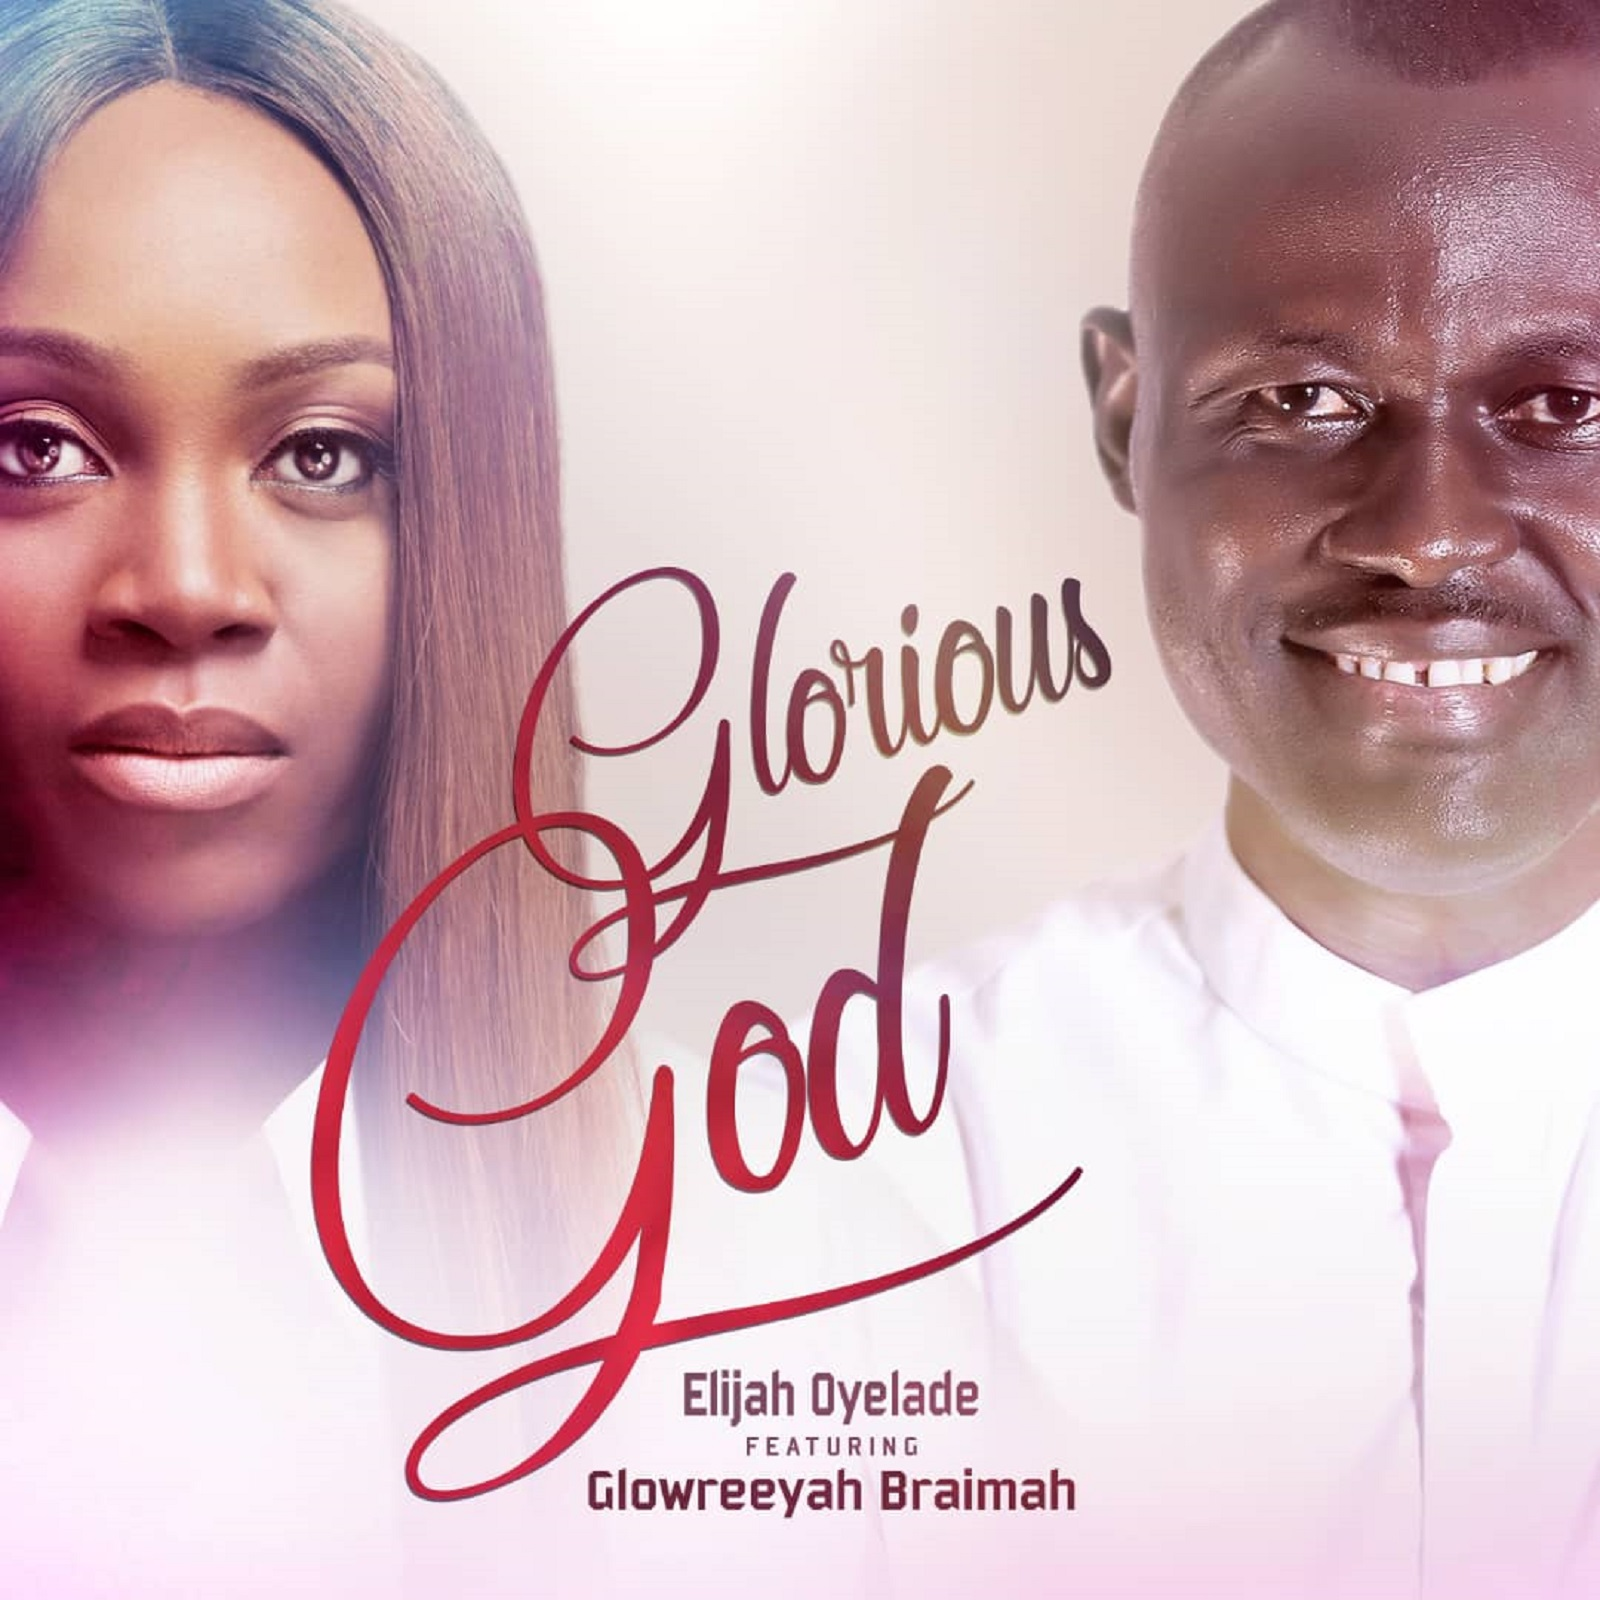 Elijah Oyelade - Glorious God Remix featuring Glowreeyah Braimah